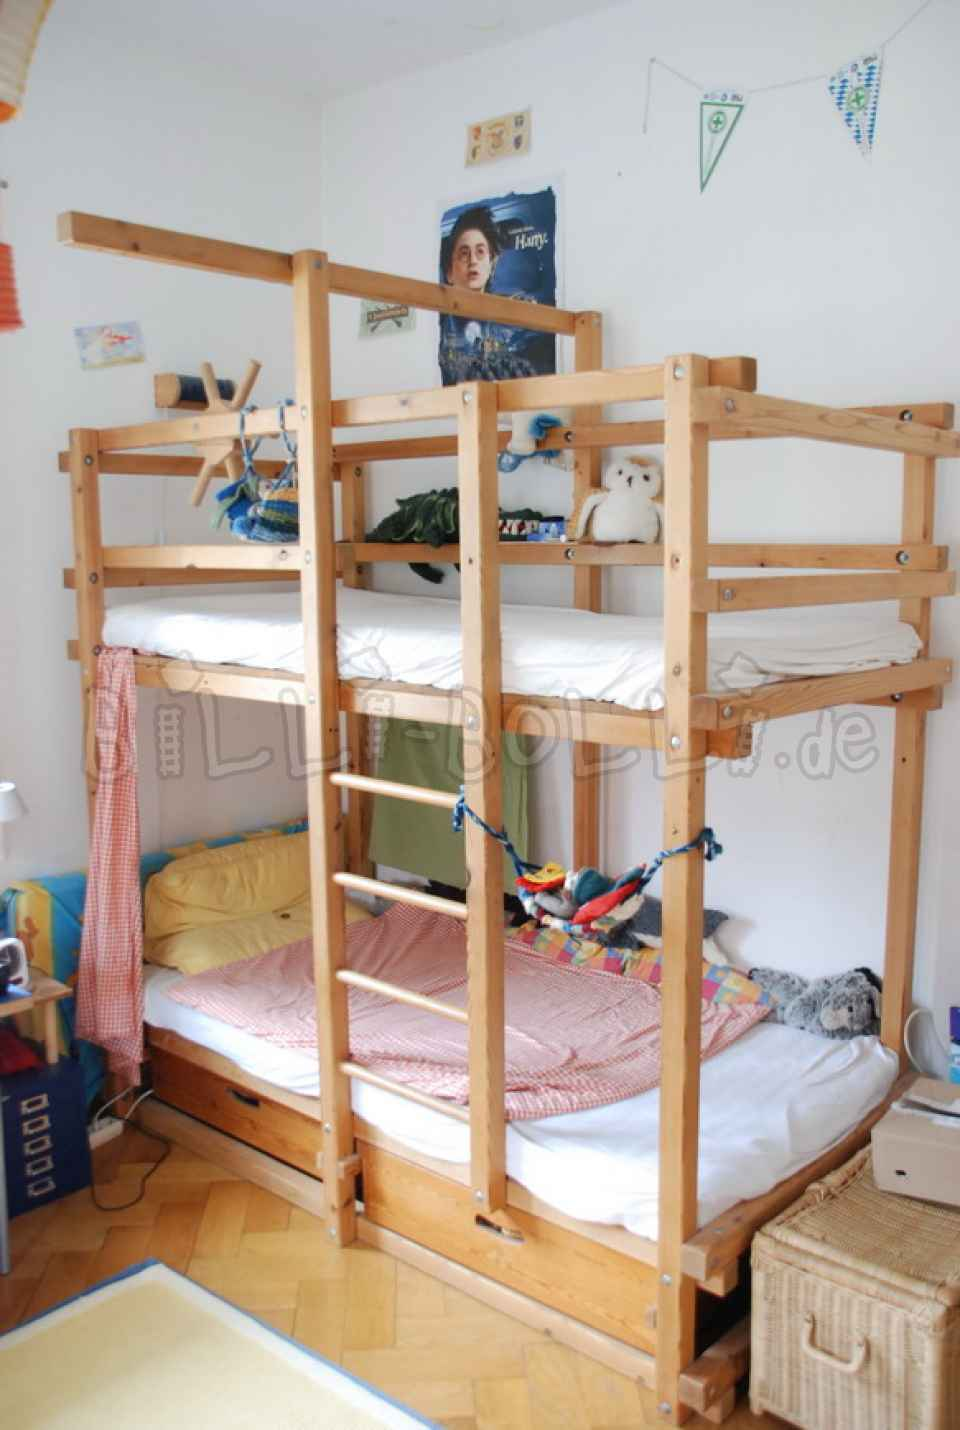 Gullibo Bed (second hand kids' furniture)